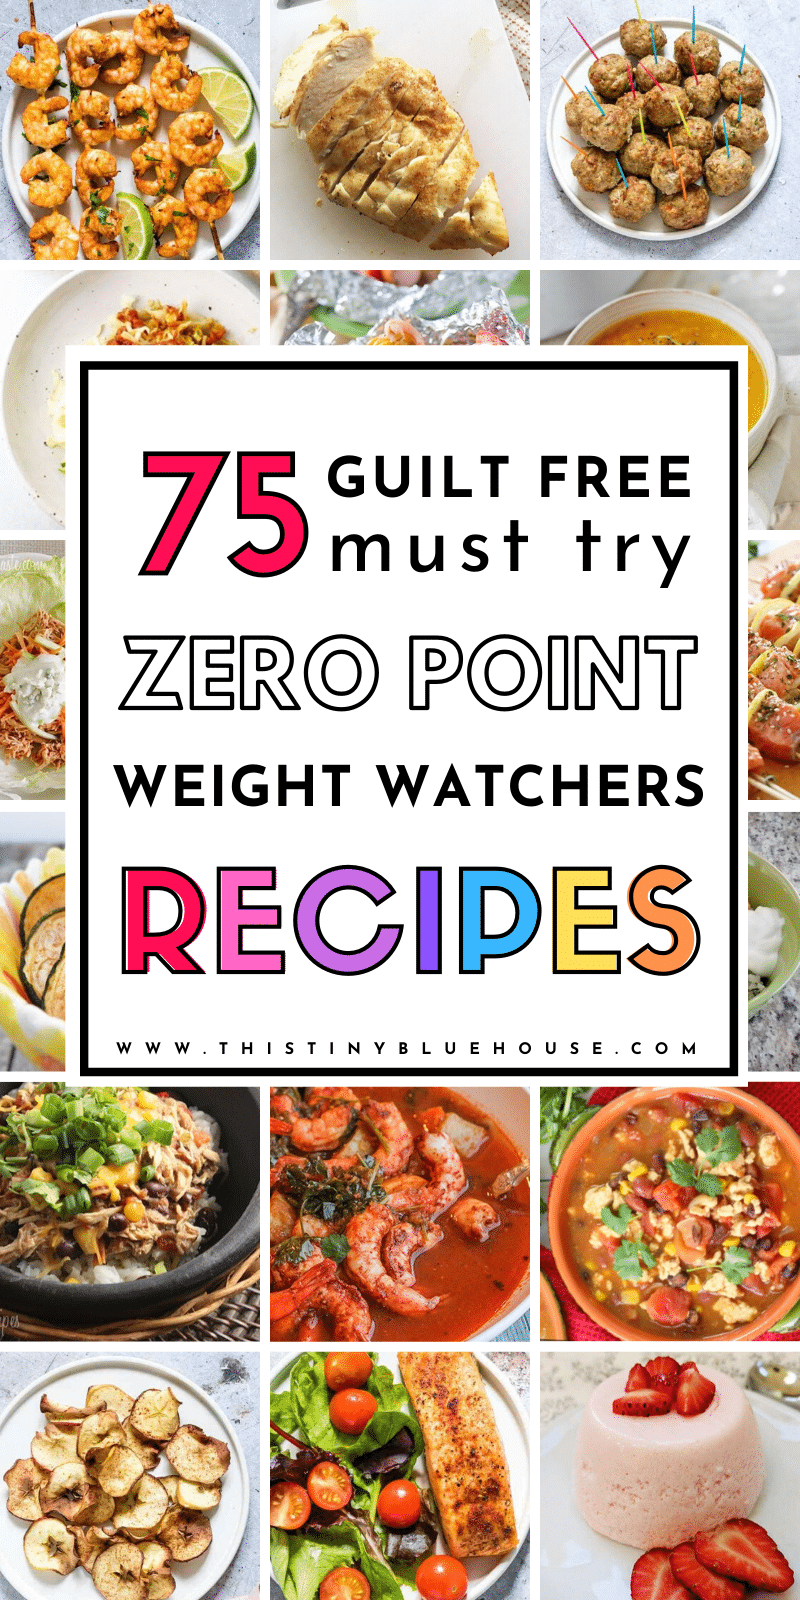 75 MUST TRY Zero Point Weight Watchers Food and recipe ideas that are sure to make sticking to your diet an absolute breeze. From apps to soups and lunches, dinners and even desserts these recipes are a must for anyone following the Weight Watchers diet. #weightwatchers #weightwatchersforfree #weightwatchersrecipeswithpoints #weightwatchersfreestyle #weightwatcherssnacks #weightwatchersdesserts #weightwatcherszeropoint #weightwatcherzeropointrecipes #weightwatcherszeropointmeals #weightwatcherszeropointsnacks #weightwatcherszeropointsoups #weightwatcherszeropointlunch #weightwatcherszeropointdesserts